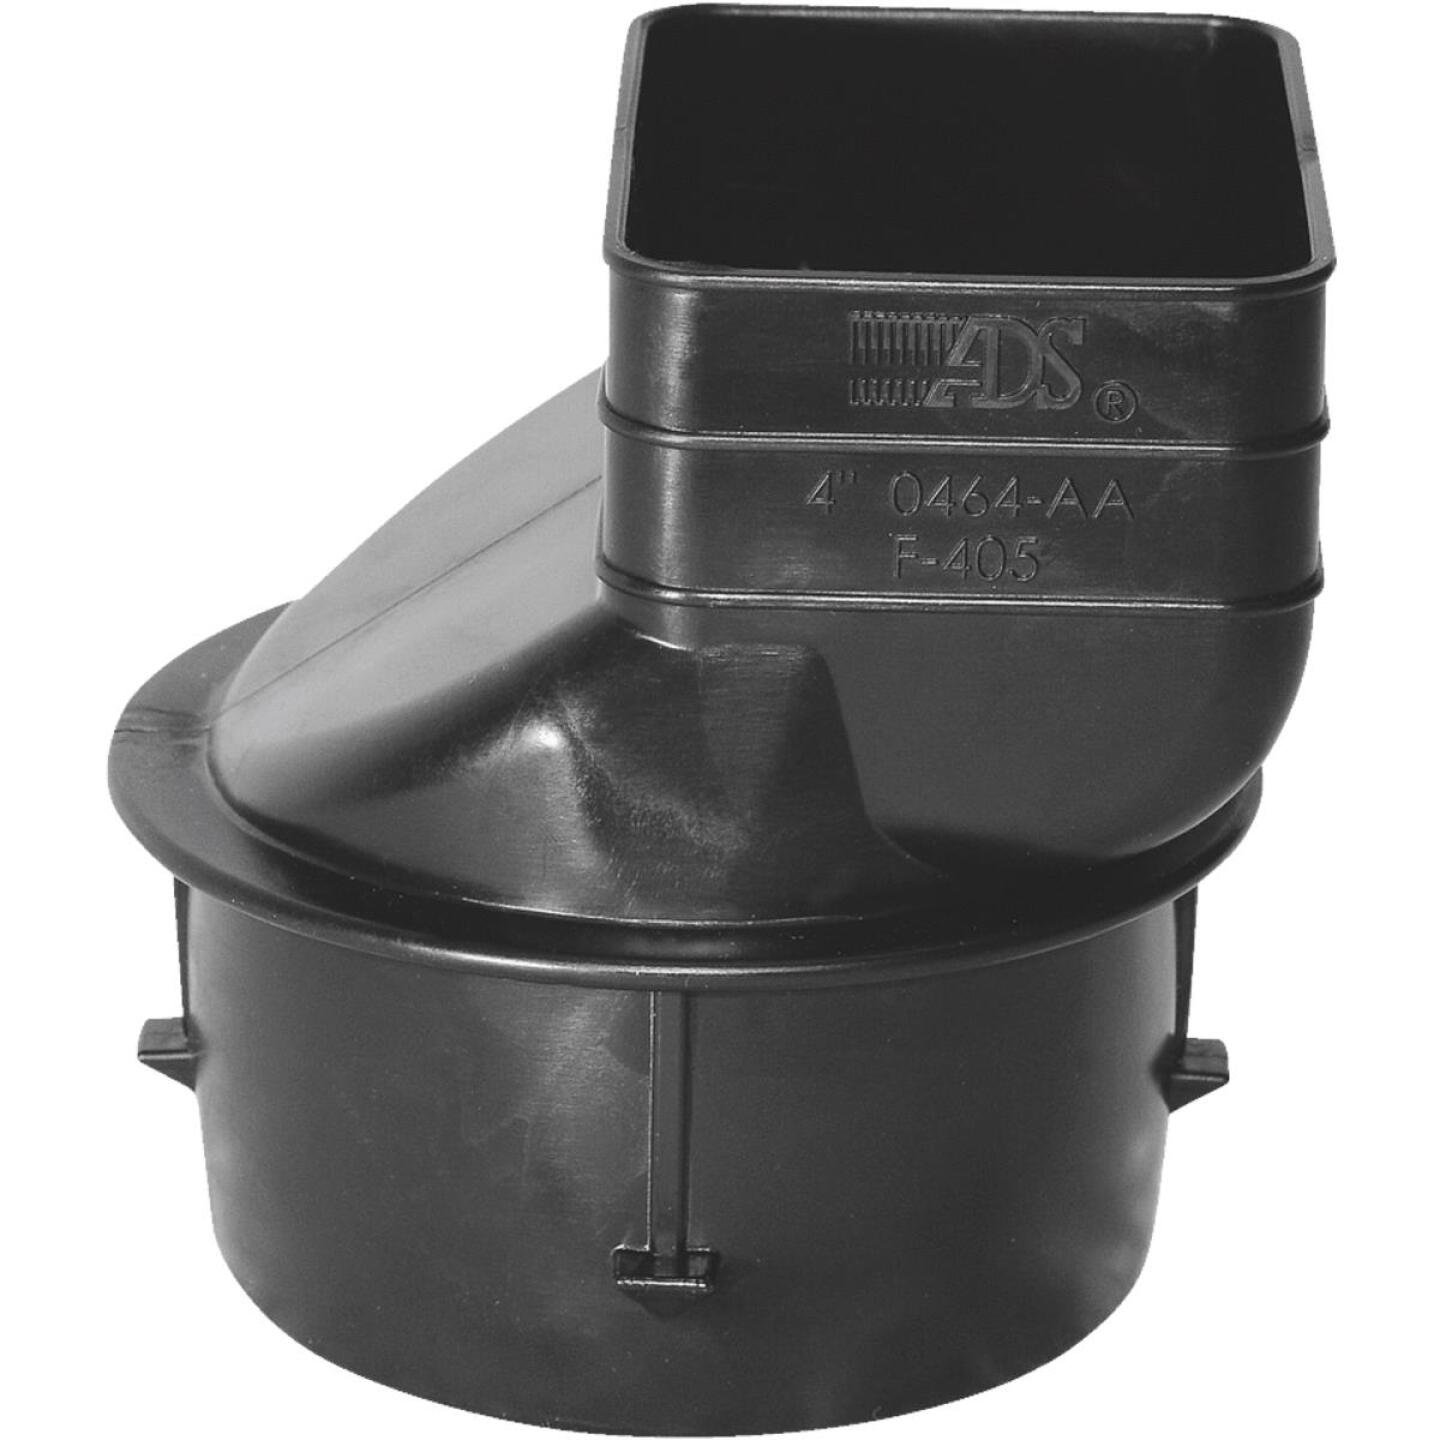 Advanced Basement 2 In. X 3 In. X 3 In. Polyethylene Corrugated to Downspout Barb X Female Adapter Image 1